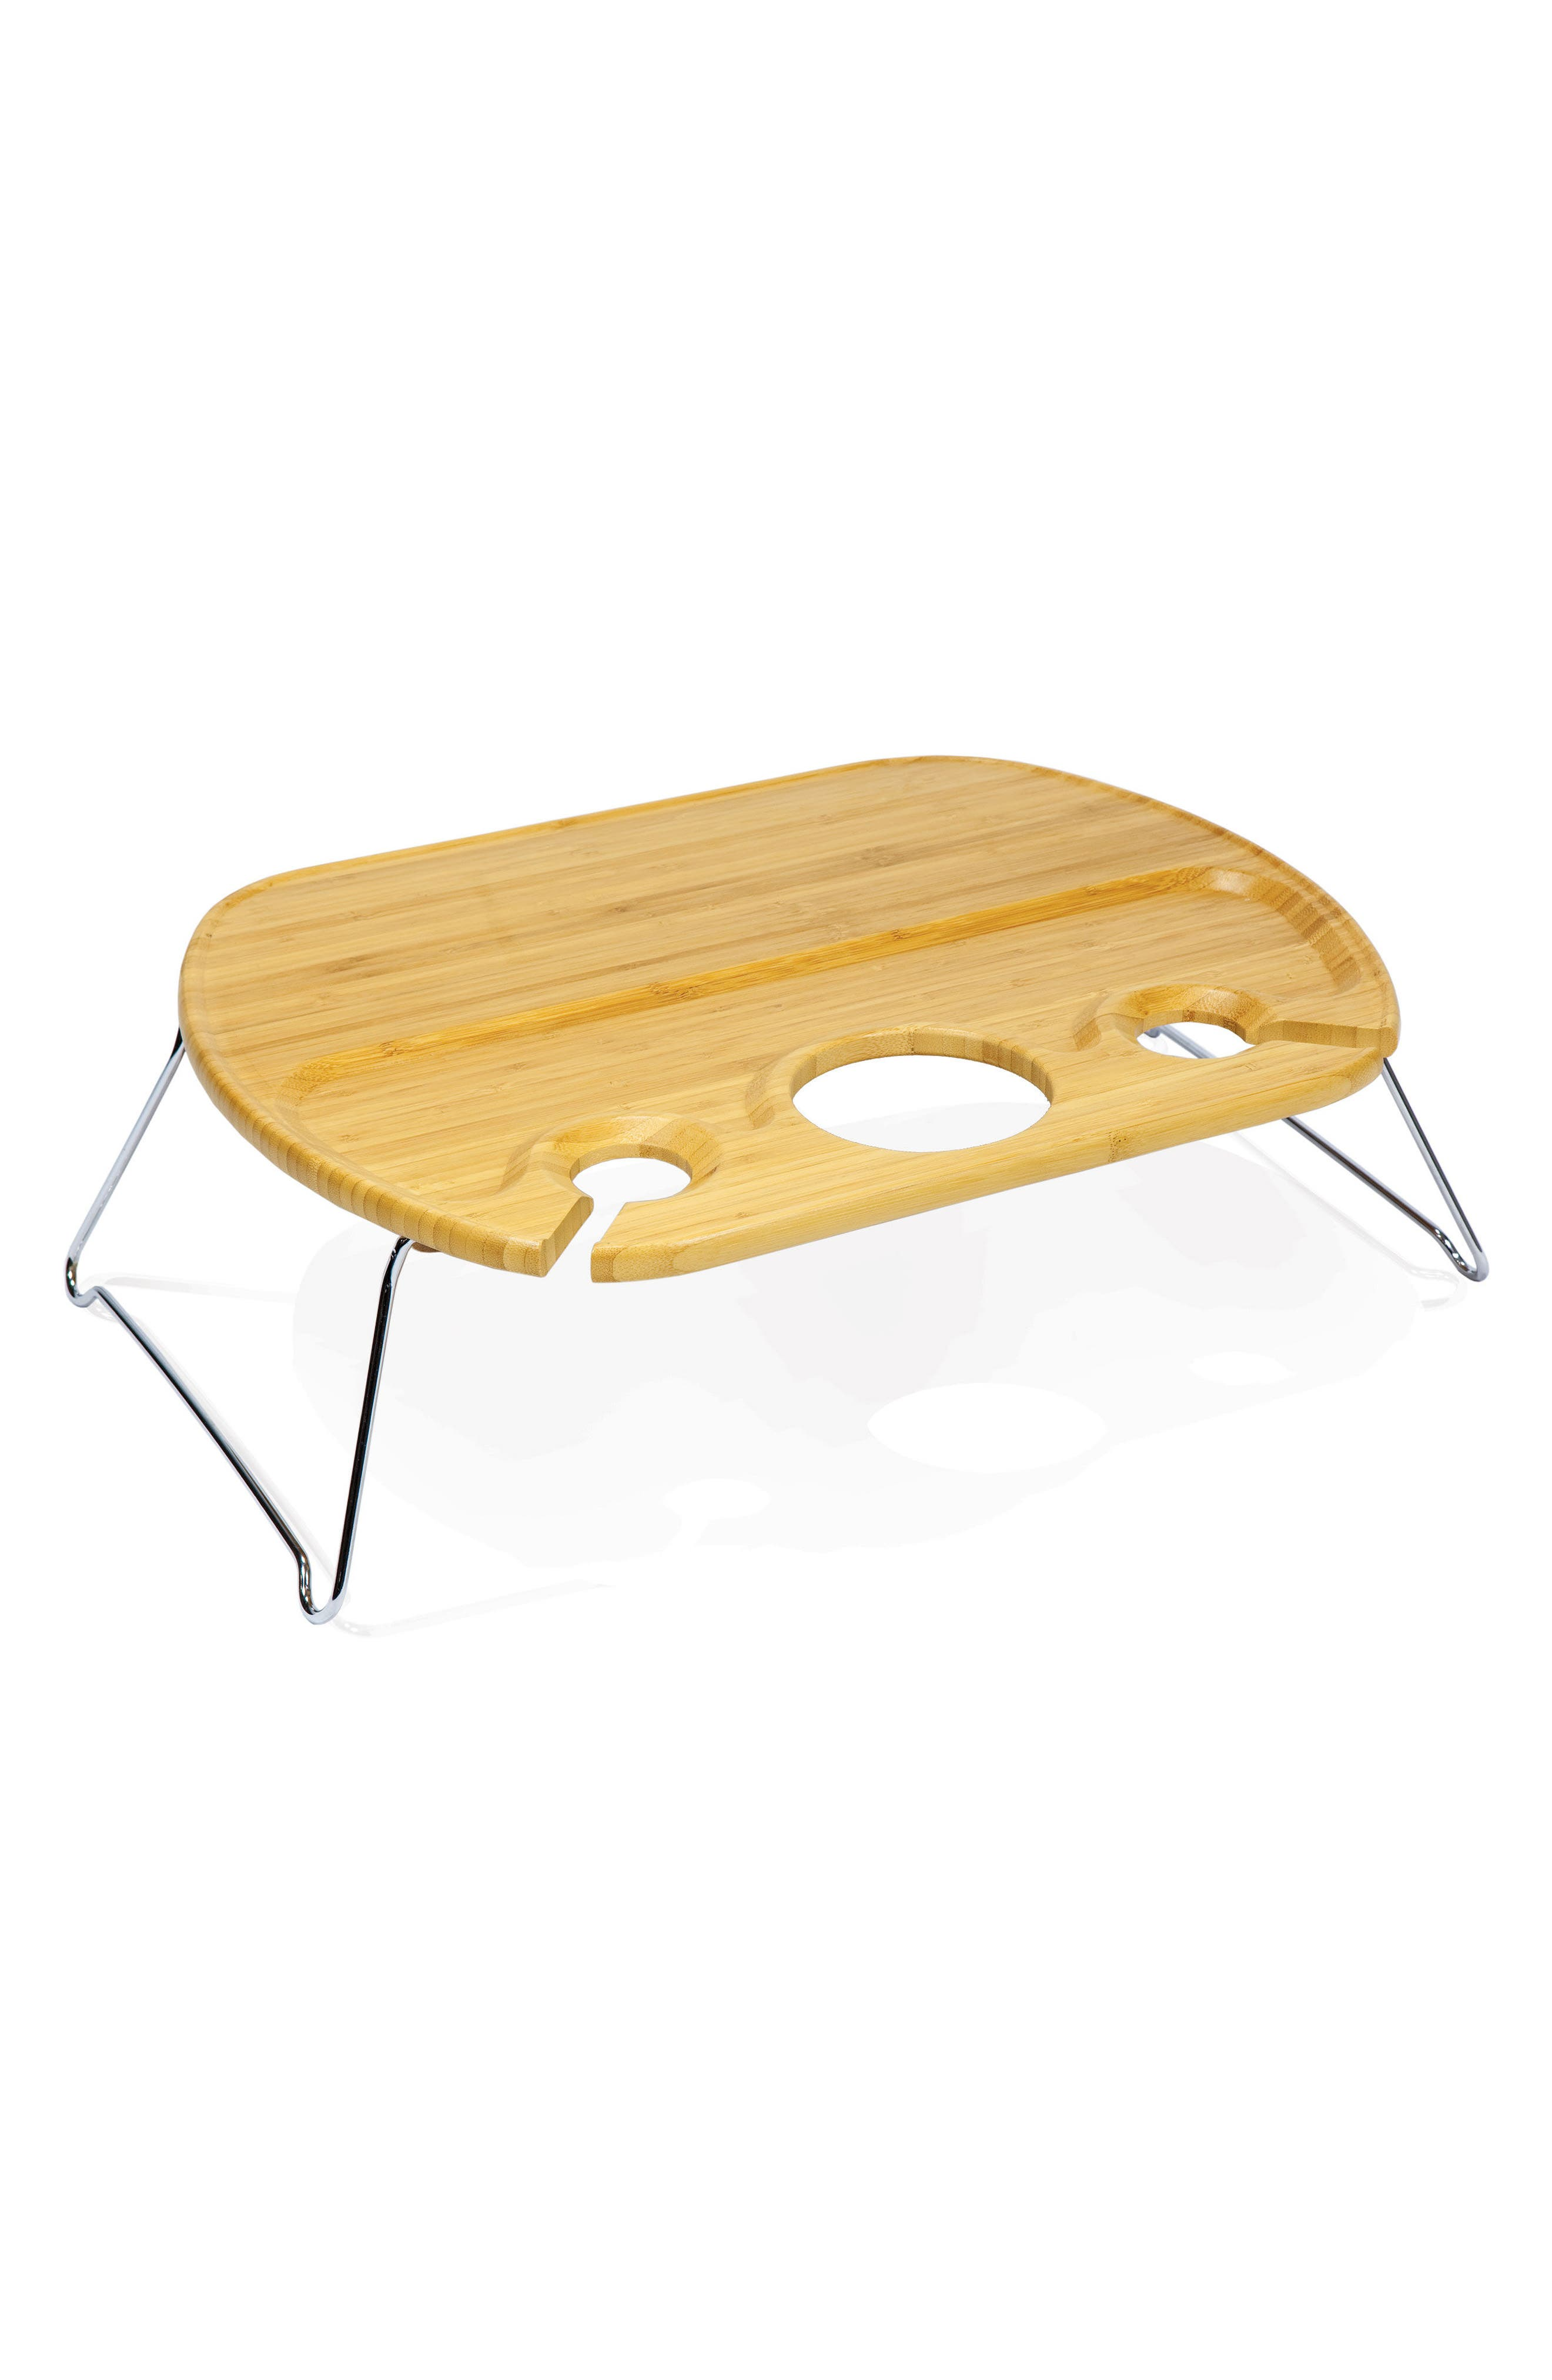 Mesamio Collapsible Wine & Snack Table,                             Main thumbnail 1, color,                             Brown